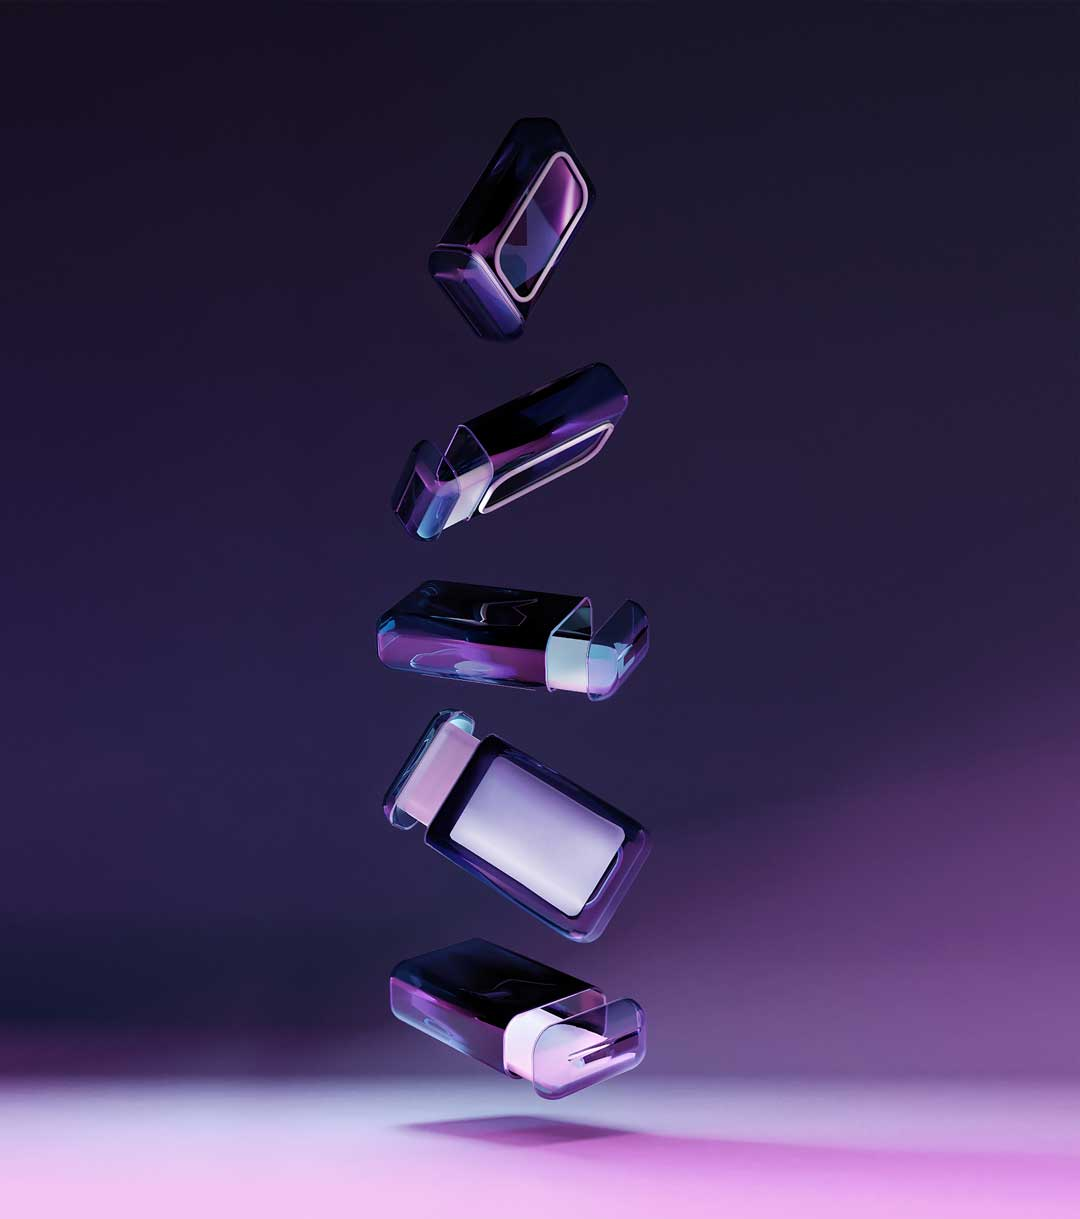 A futurist, purple and pink plexiglass piece of furniture levitating in a 3d product rendering.